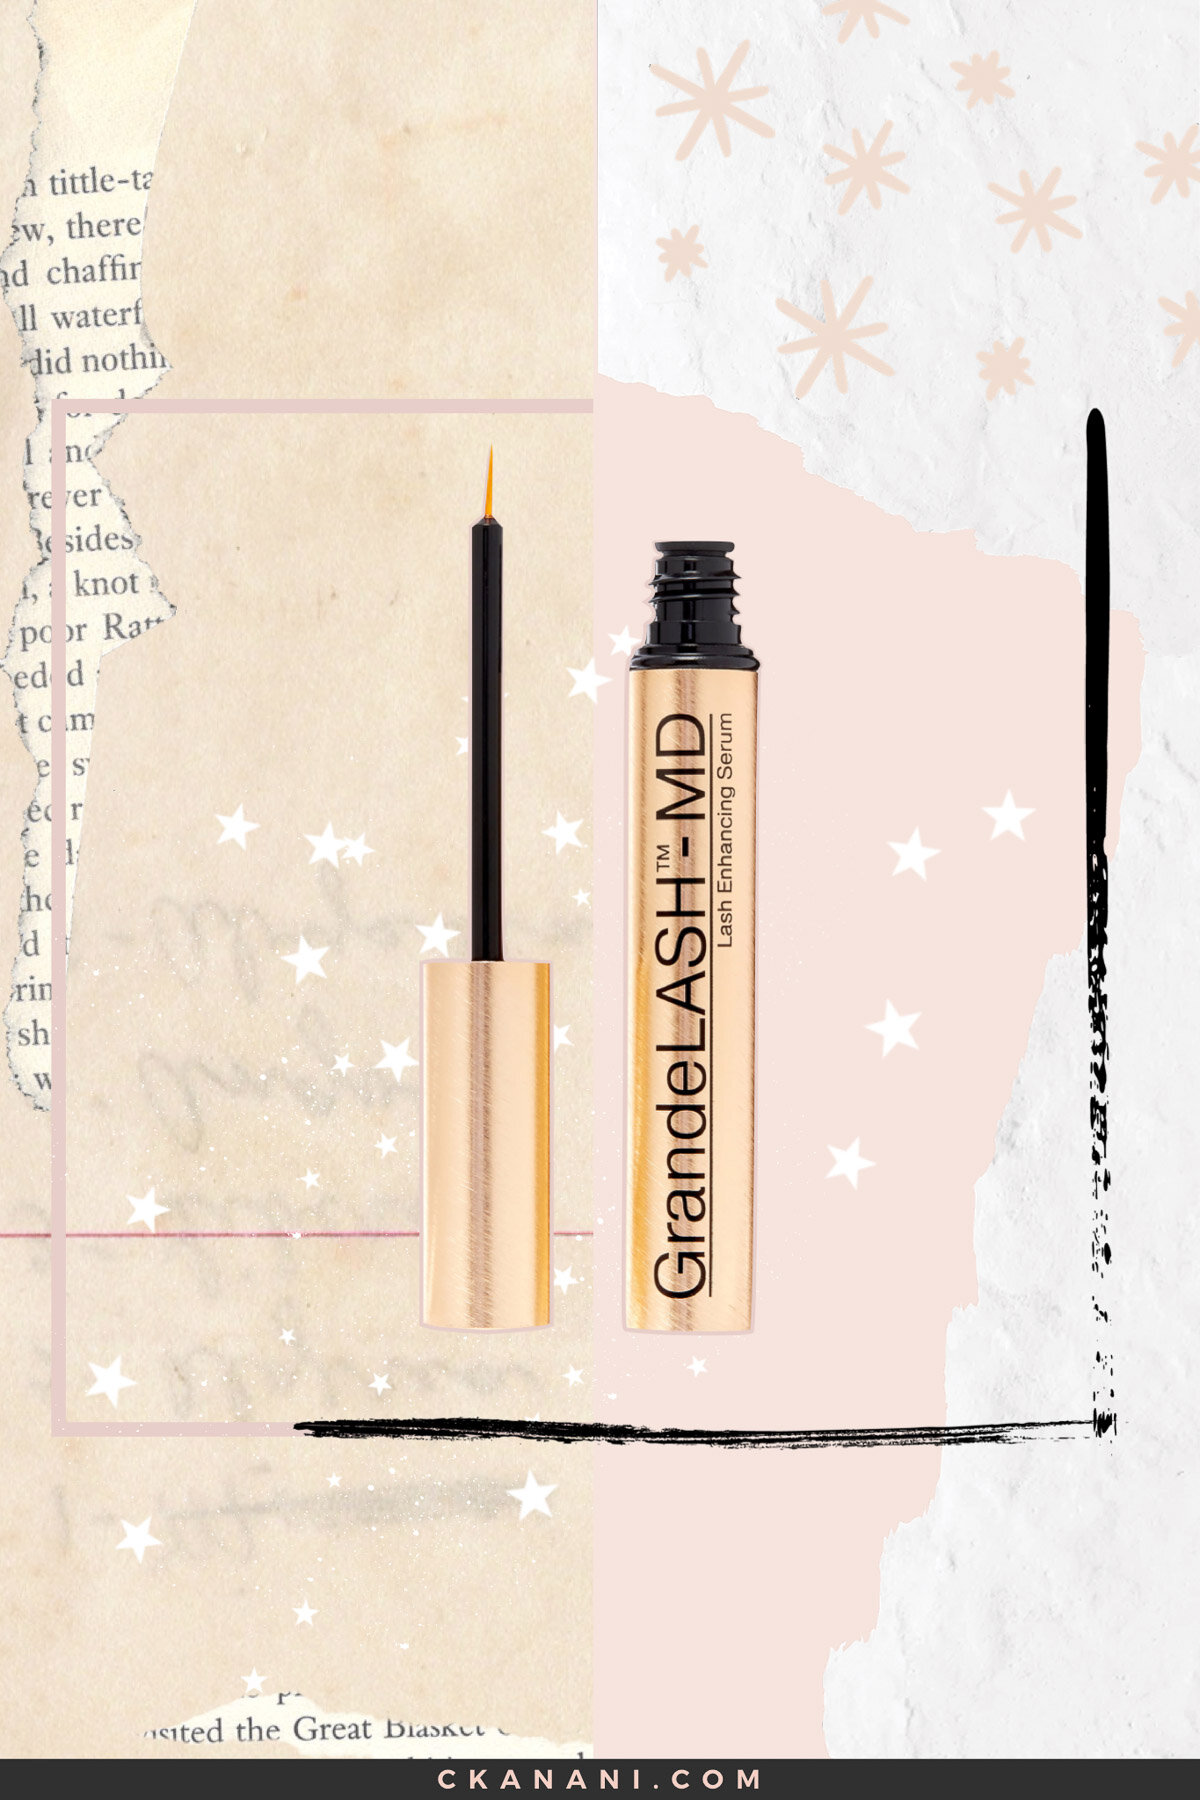 Grande Cosmetics GrandeLASH™ - MD Lash Enhancing Serum